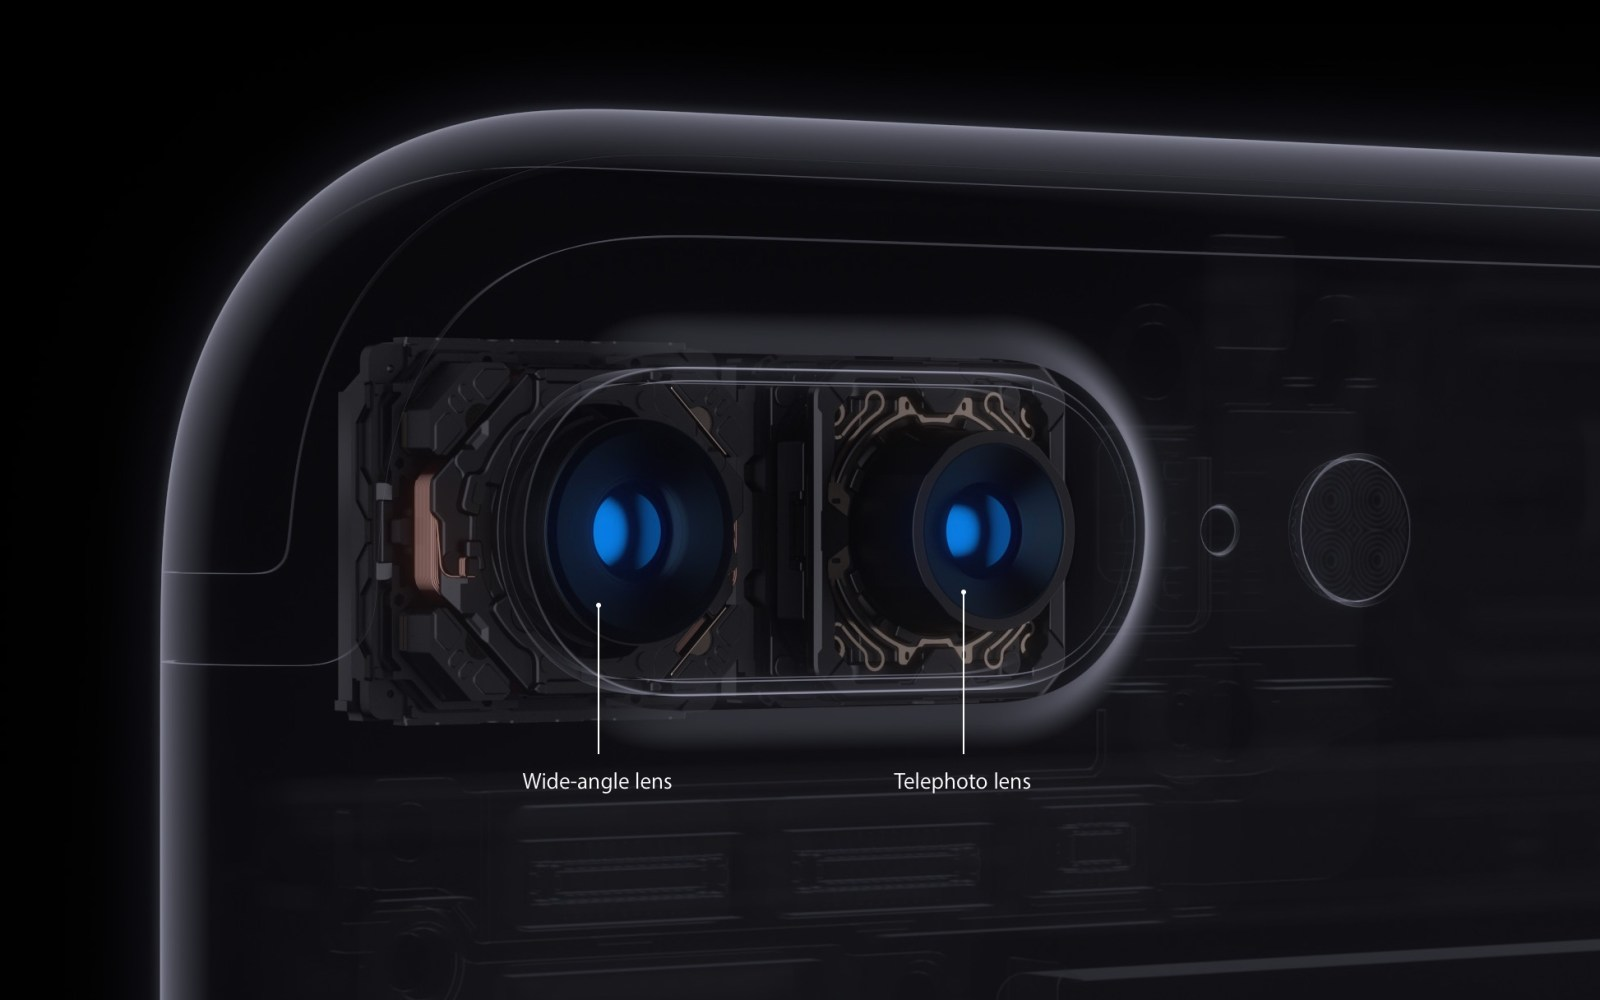 KGI: Dual-lens camera to remain exclusive to high-end new iPhone models in 2017, small upgrades expected